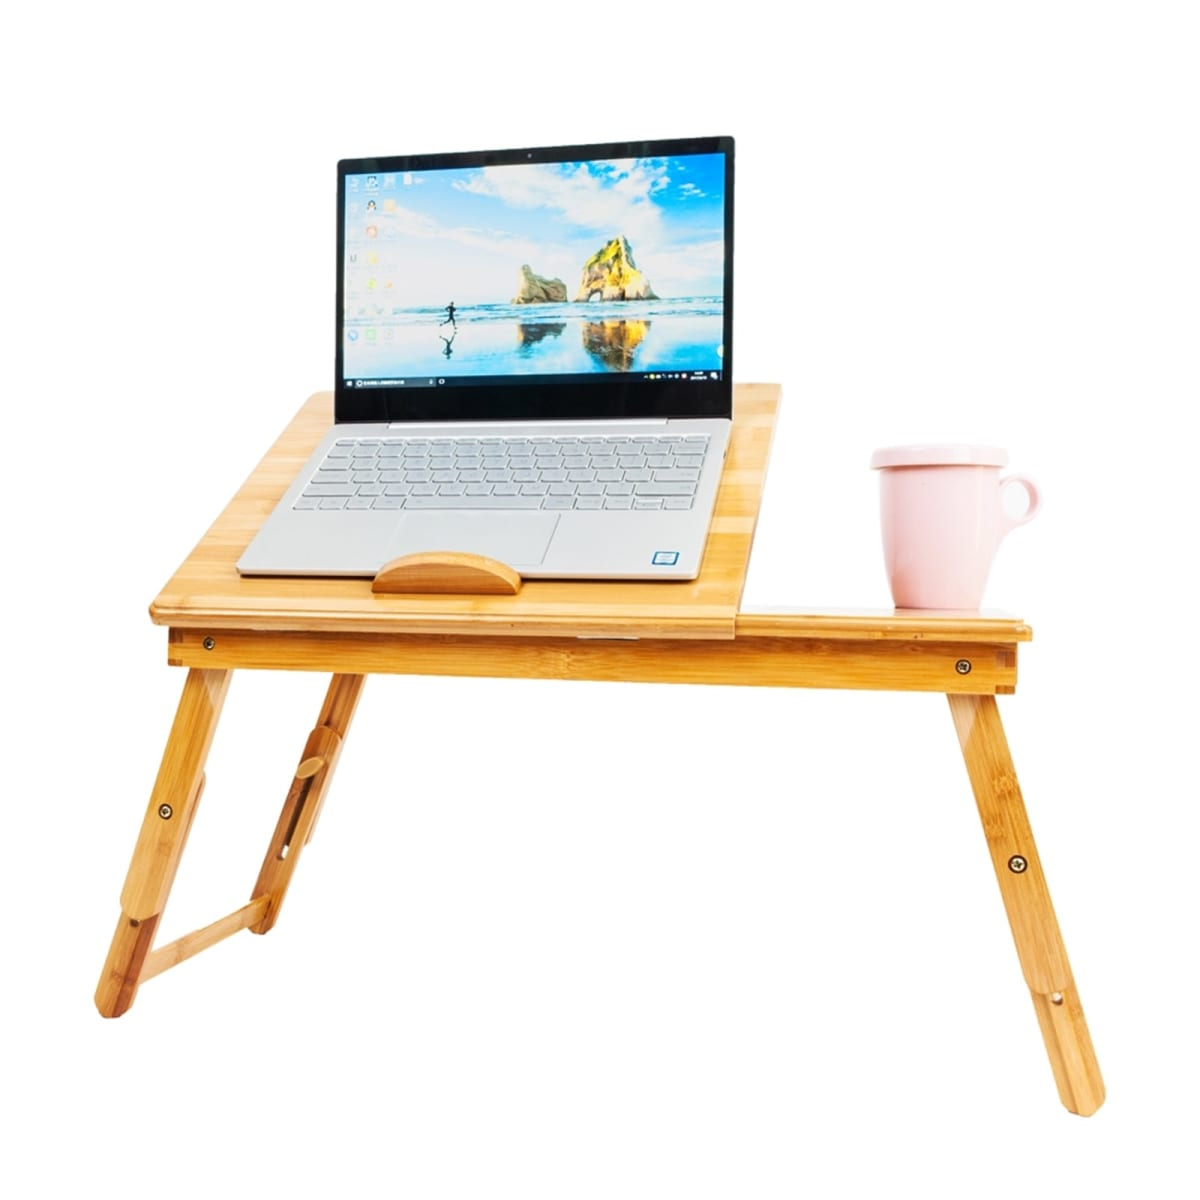 Office Furniture 53cm*33cm Retro Double Flowers Pattern Laptop Desk Adjustable Bamboo Lap Desk Tray Computer Desk Bedroom Living Room Simple Desk